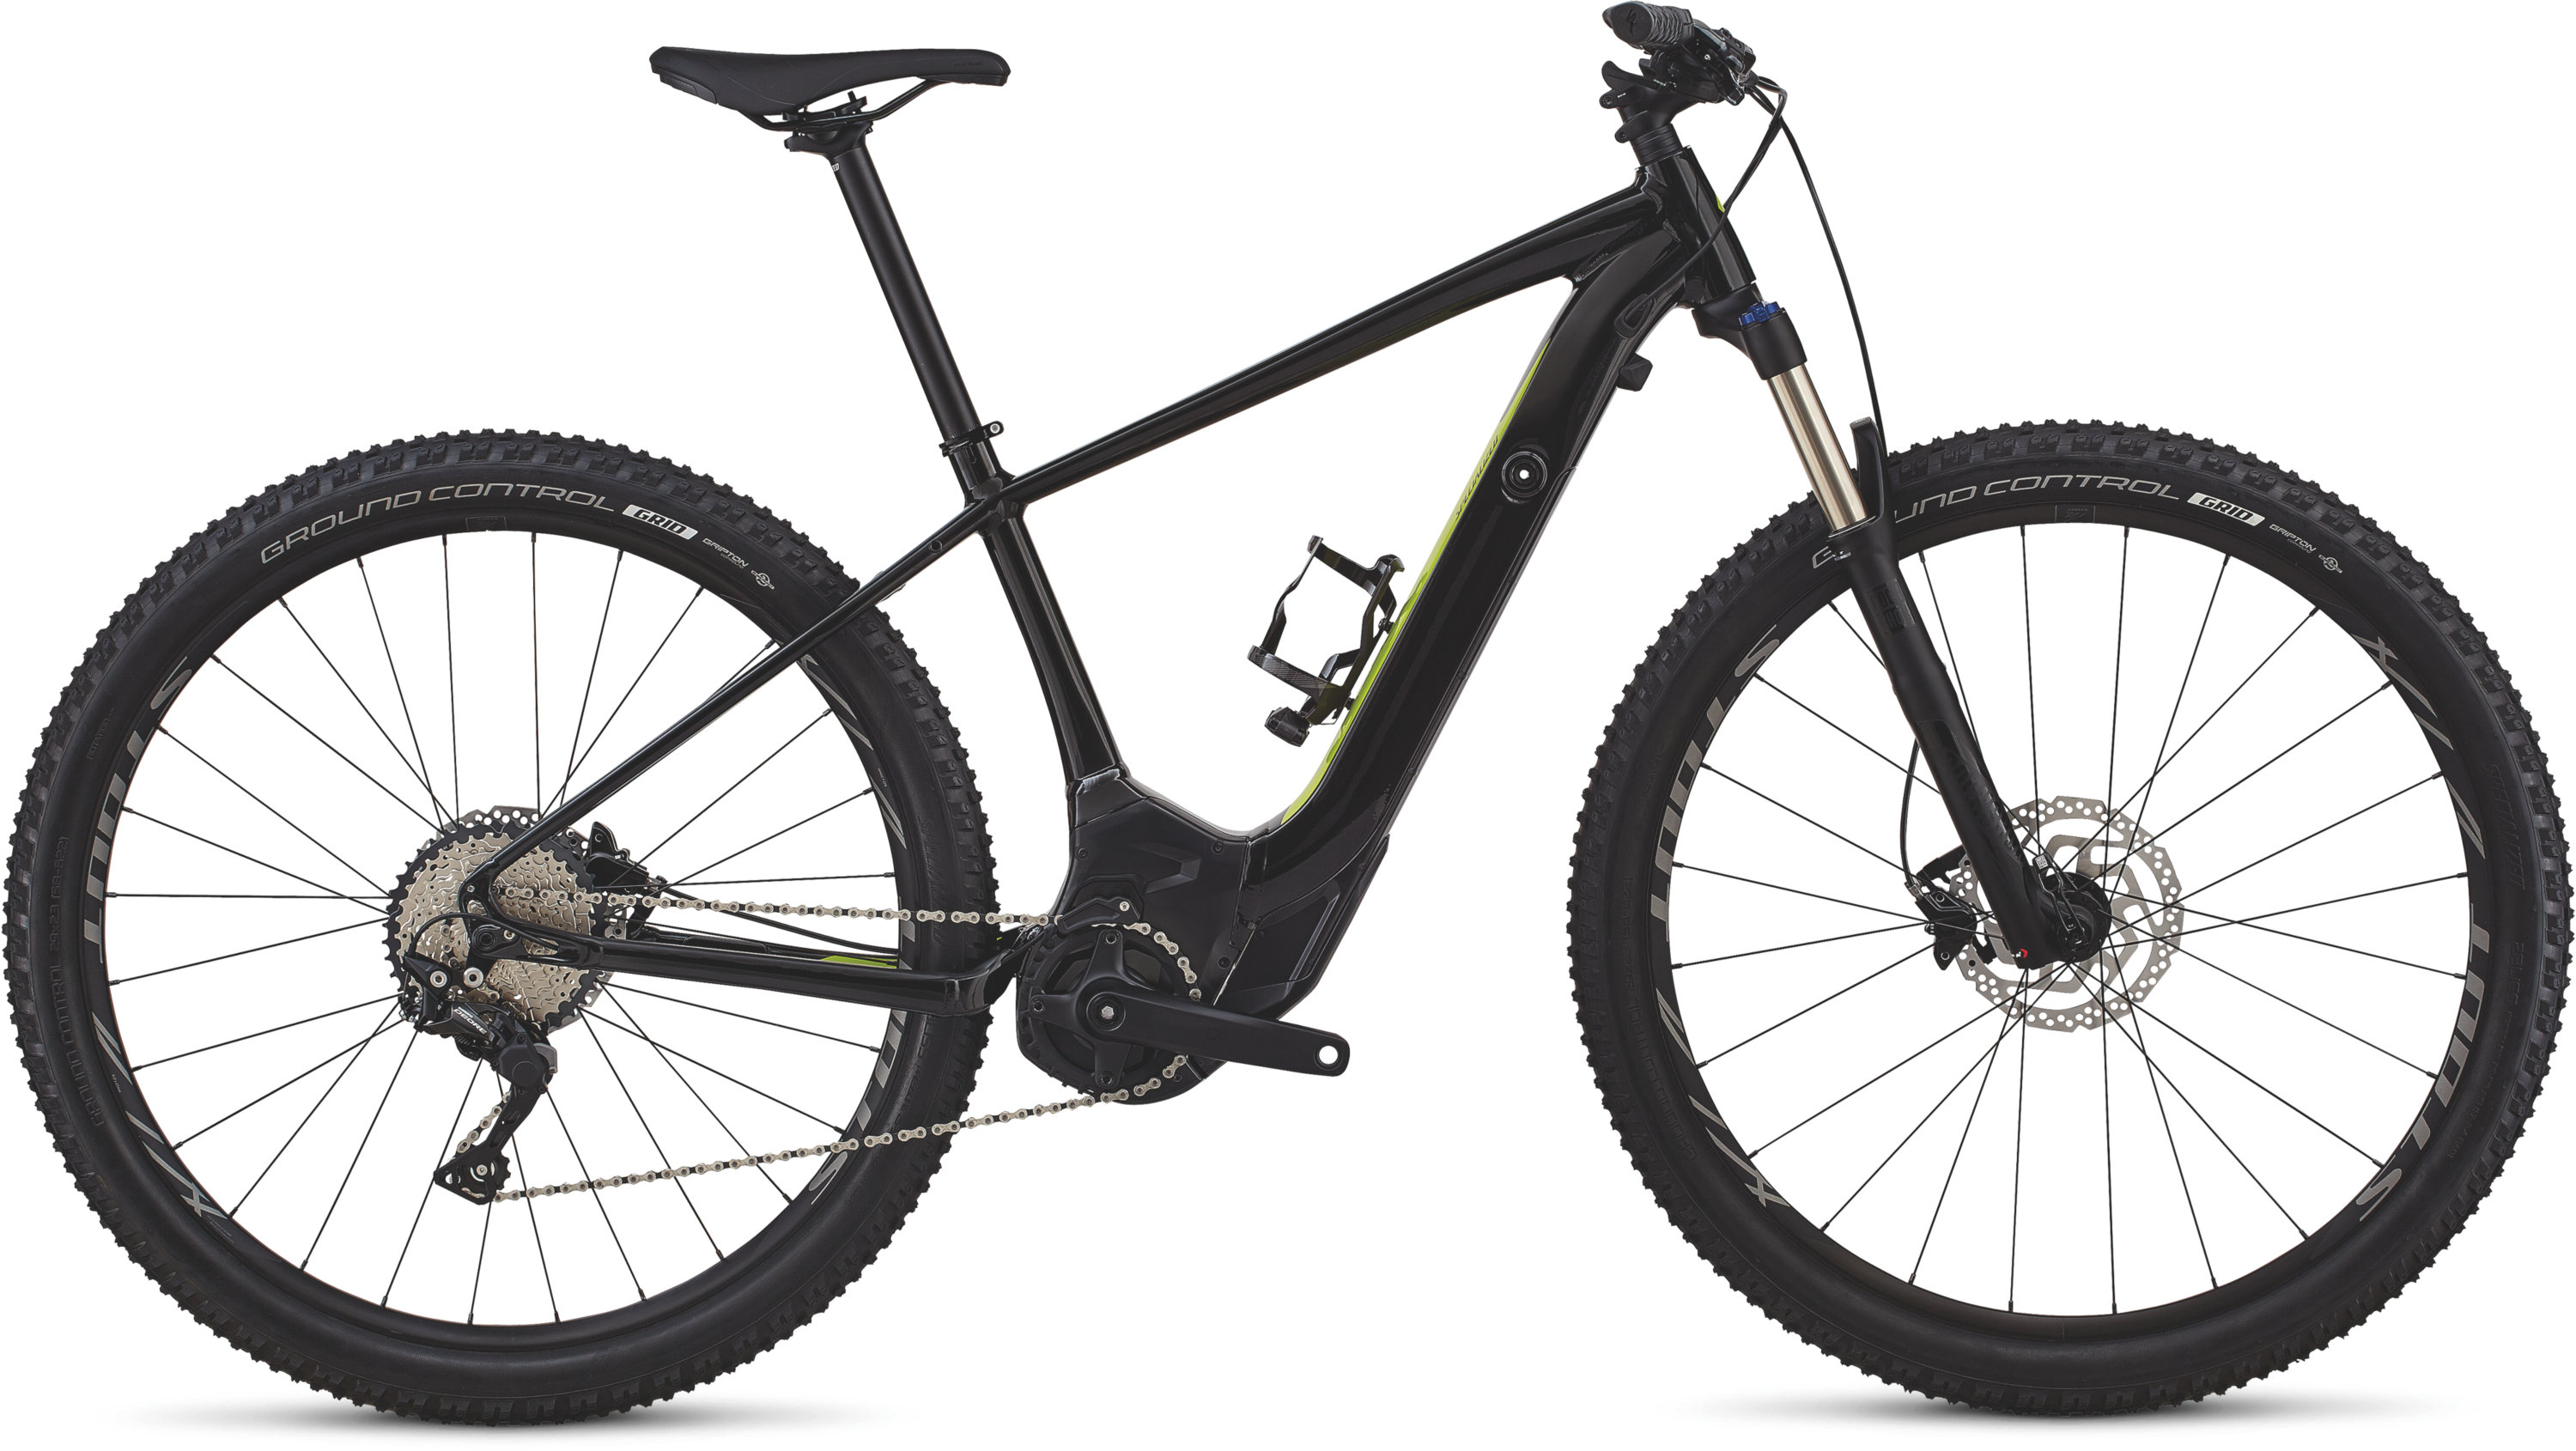 Specialized Men´s Turbo Levo Hardtail 29 Black / Hyper S - schneider-sports